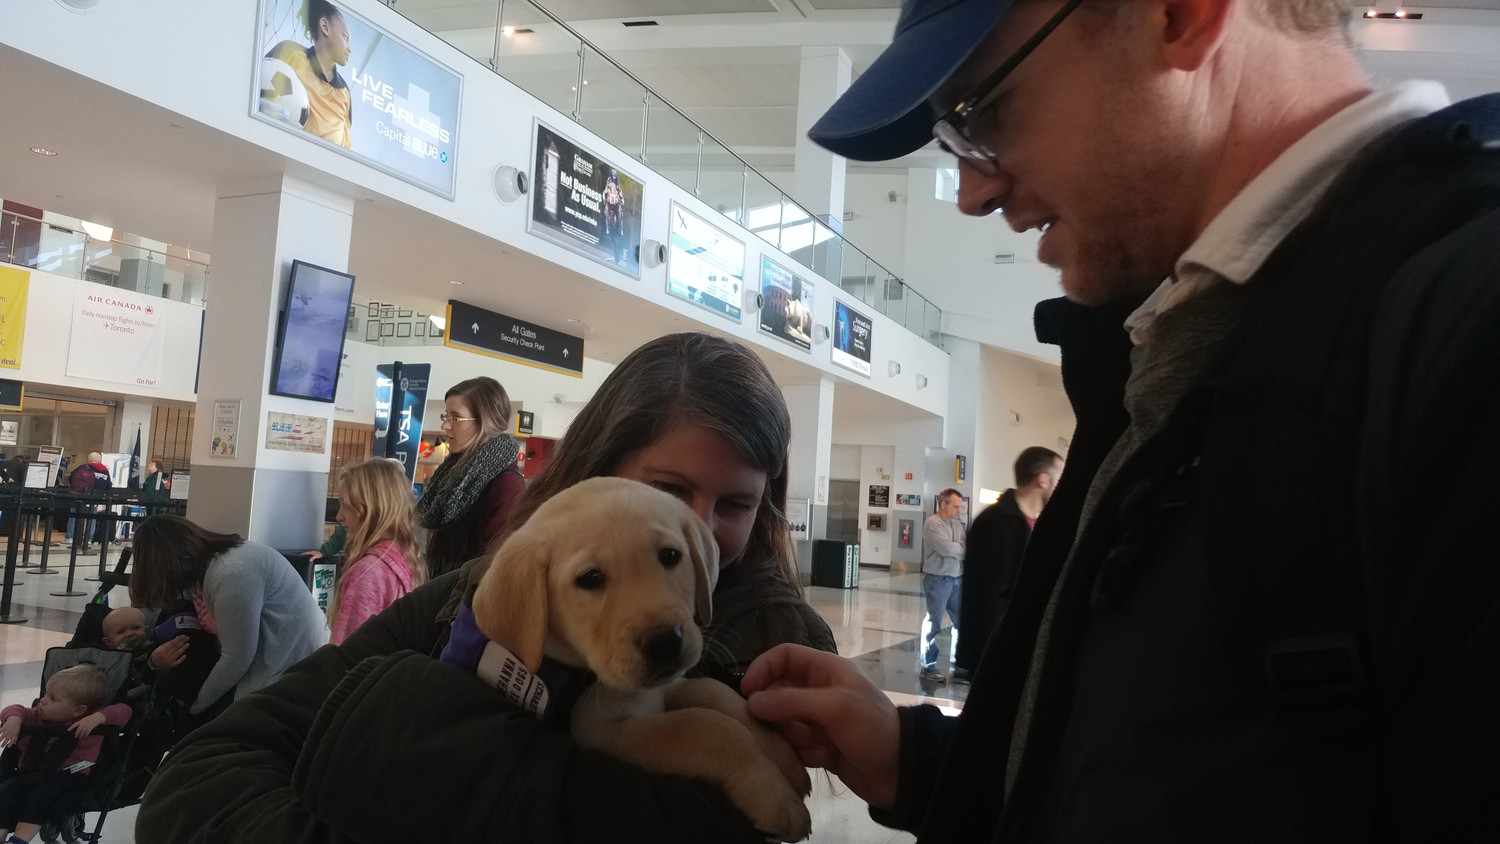 Alexis Belis and Henry Colburn of Los Angeles stop on their way out of HIA to pet a labrador puppy.